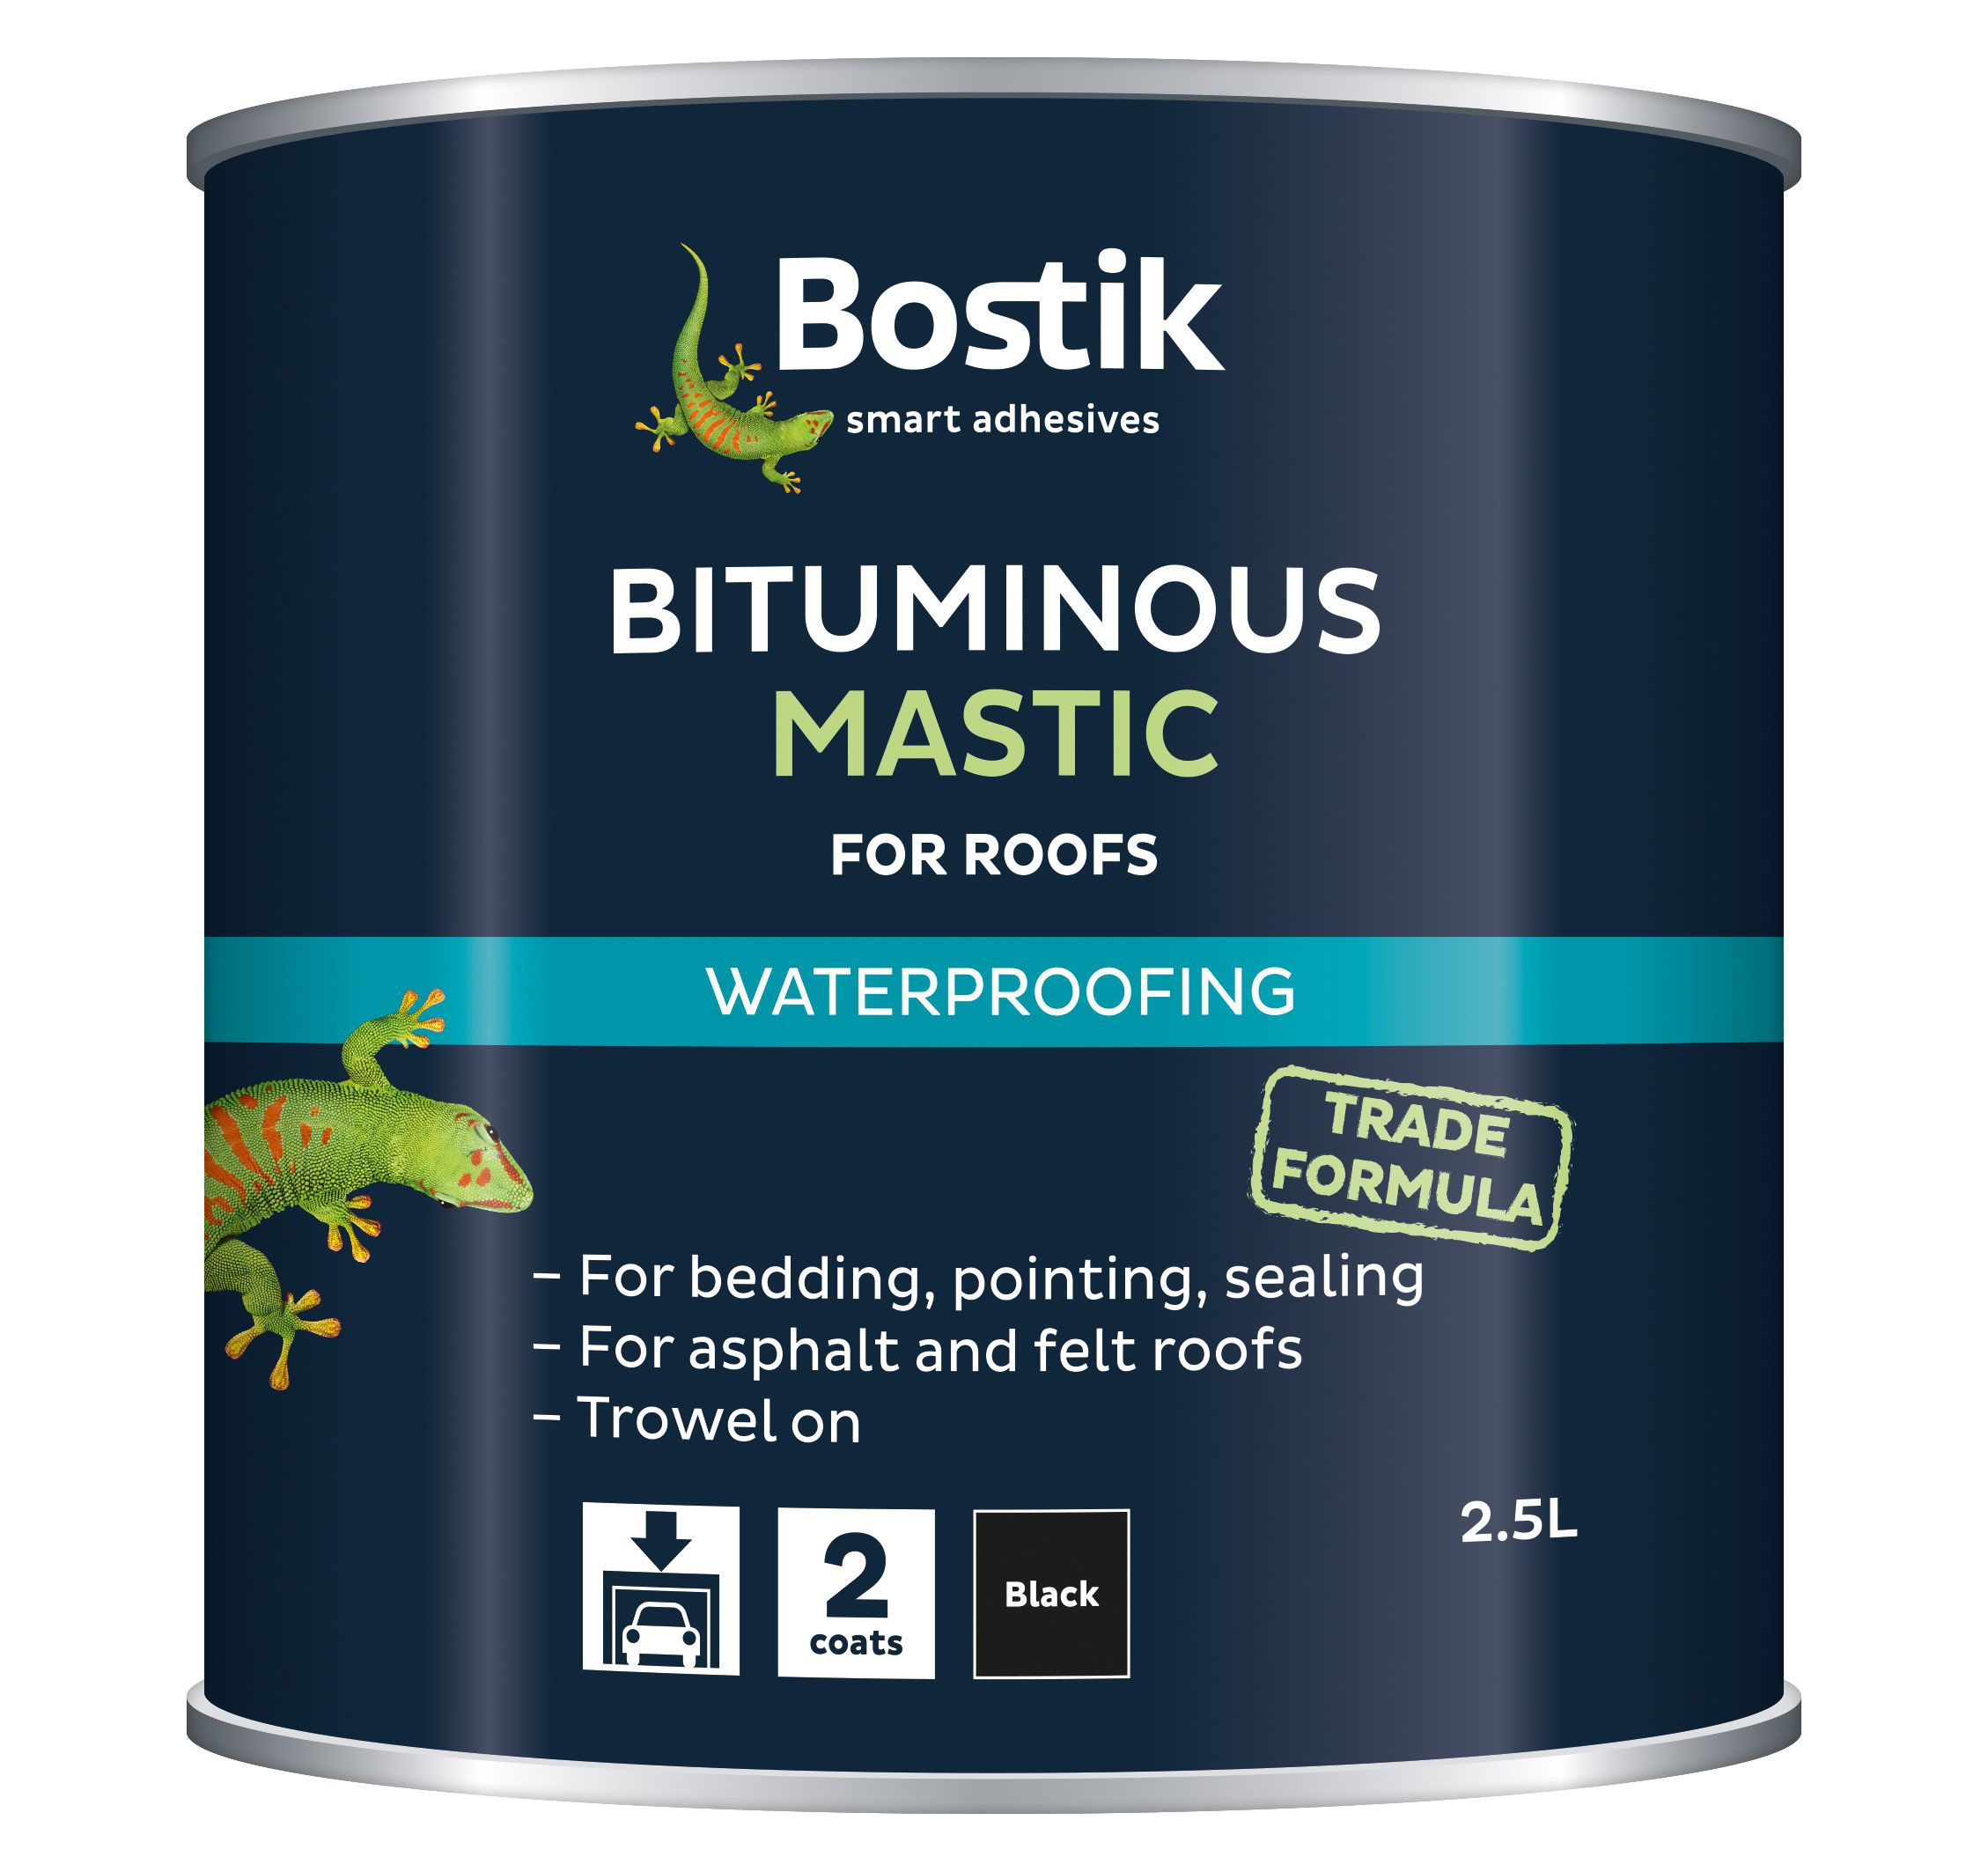 Bostik Black Waterproofing Bituminous Mastic 2 5l